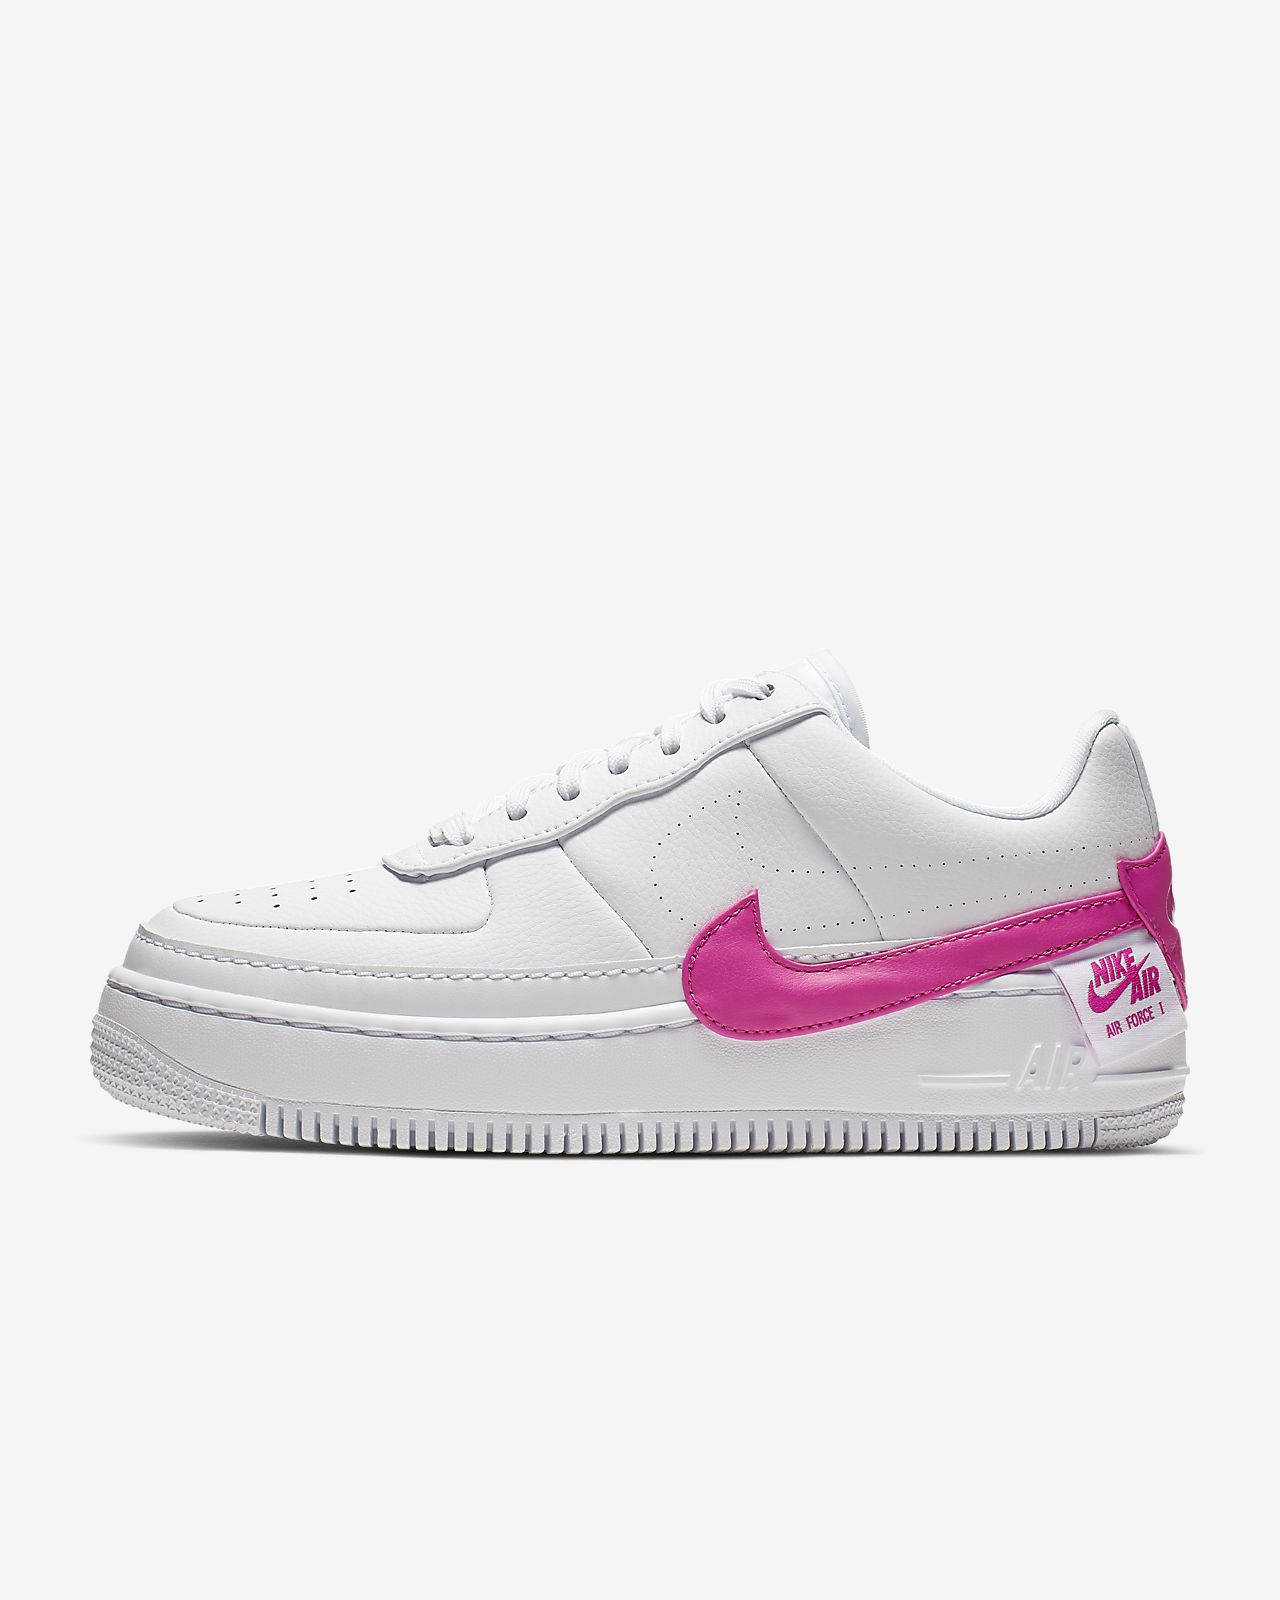 new arrival e53f0 65cf3 ... Nike Air Force 1 Jester XX Shoe